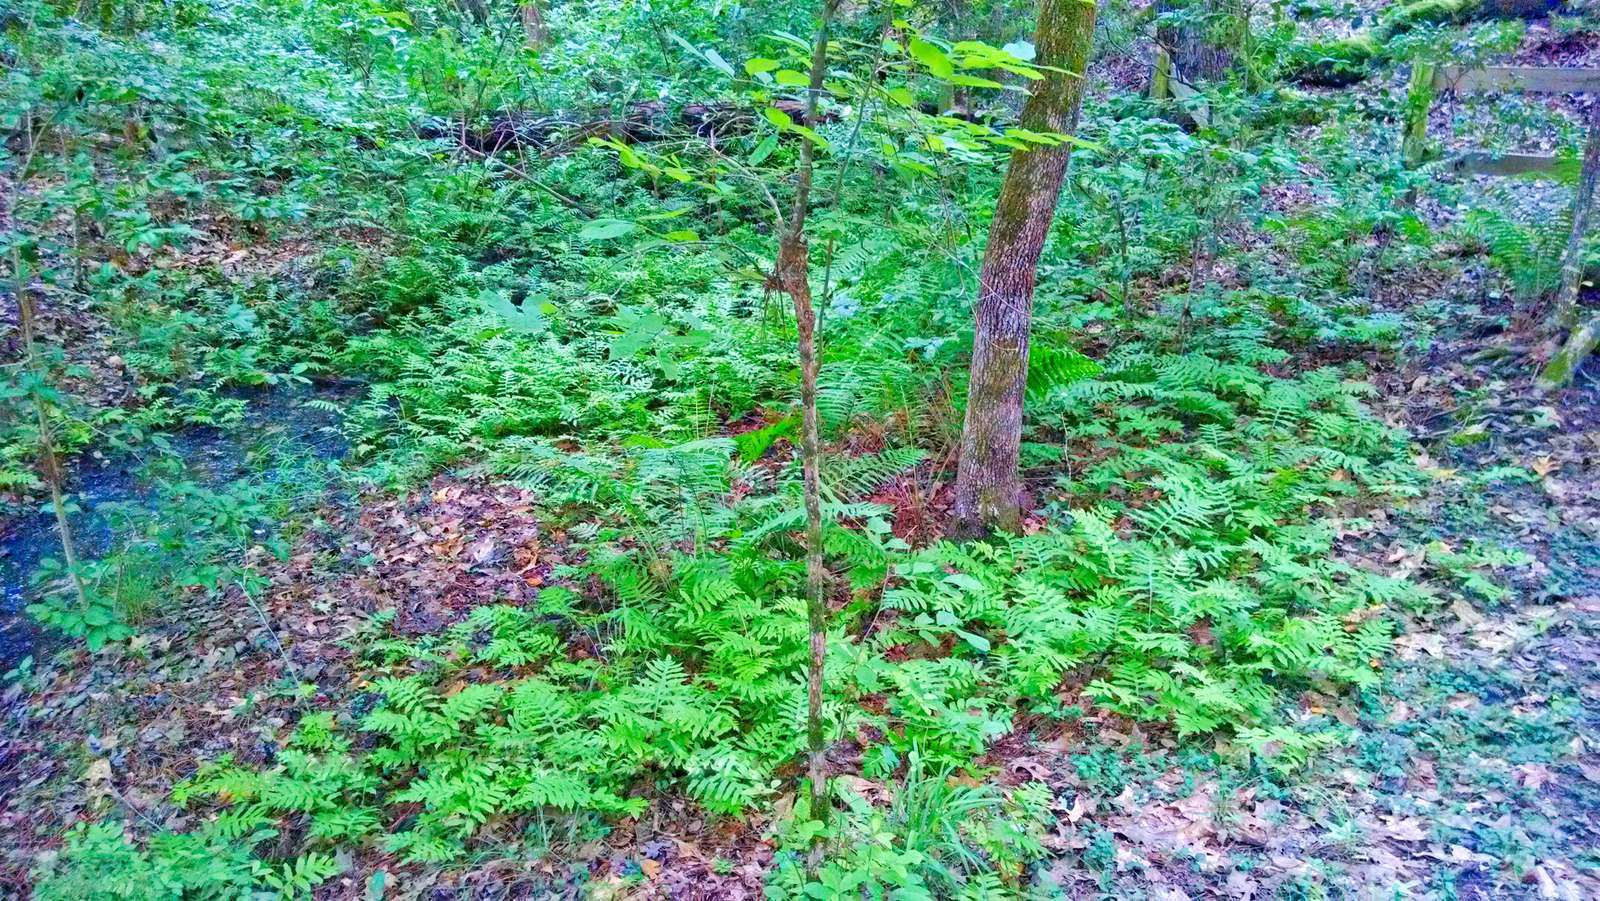 I love the fern groves. The temperature seems considerably cooler in these areas.